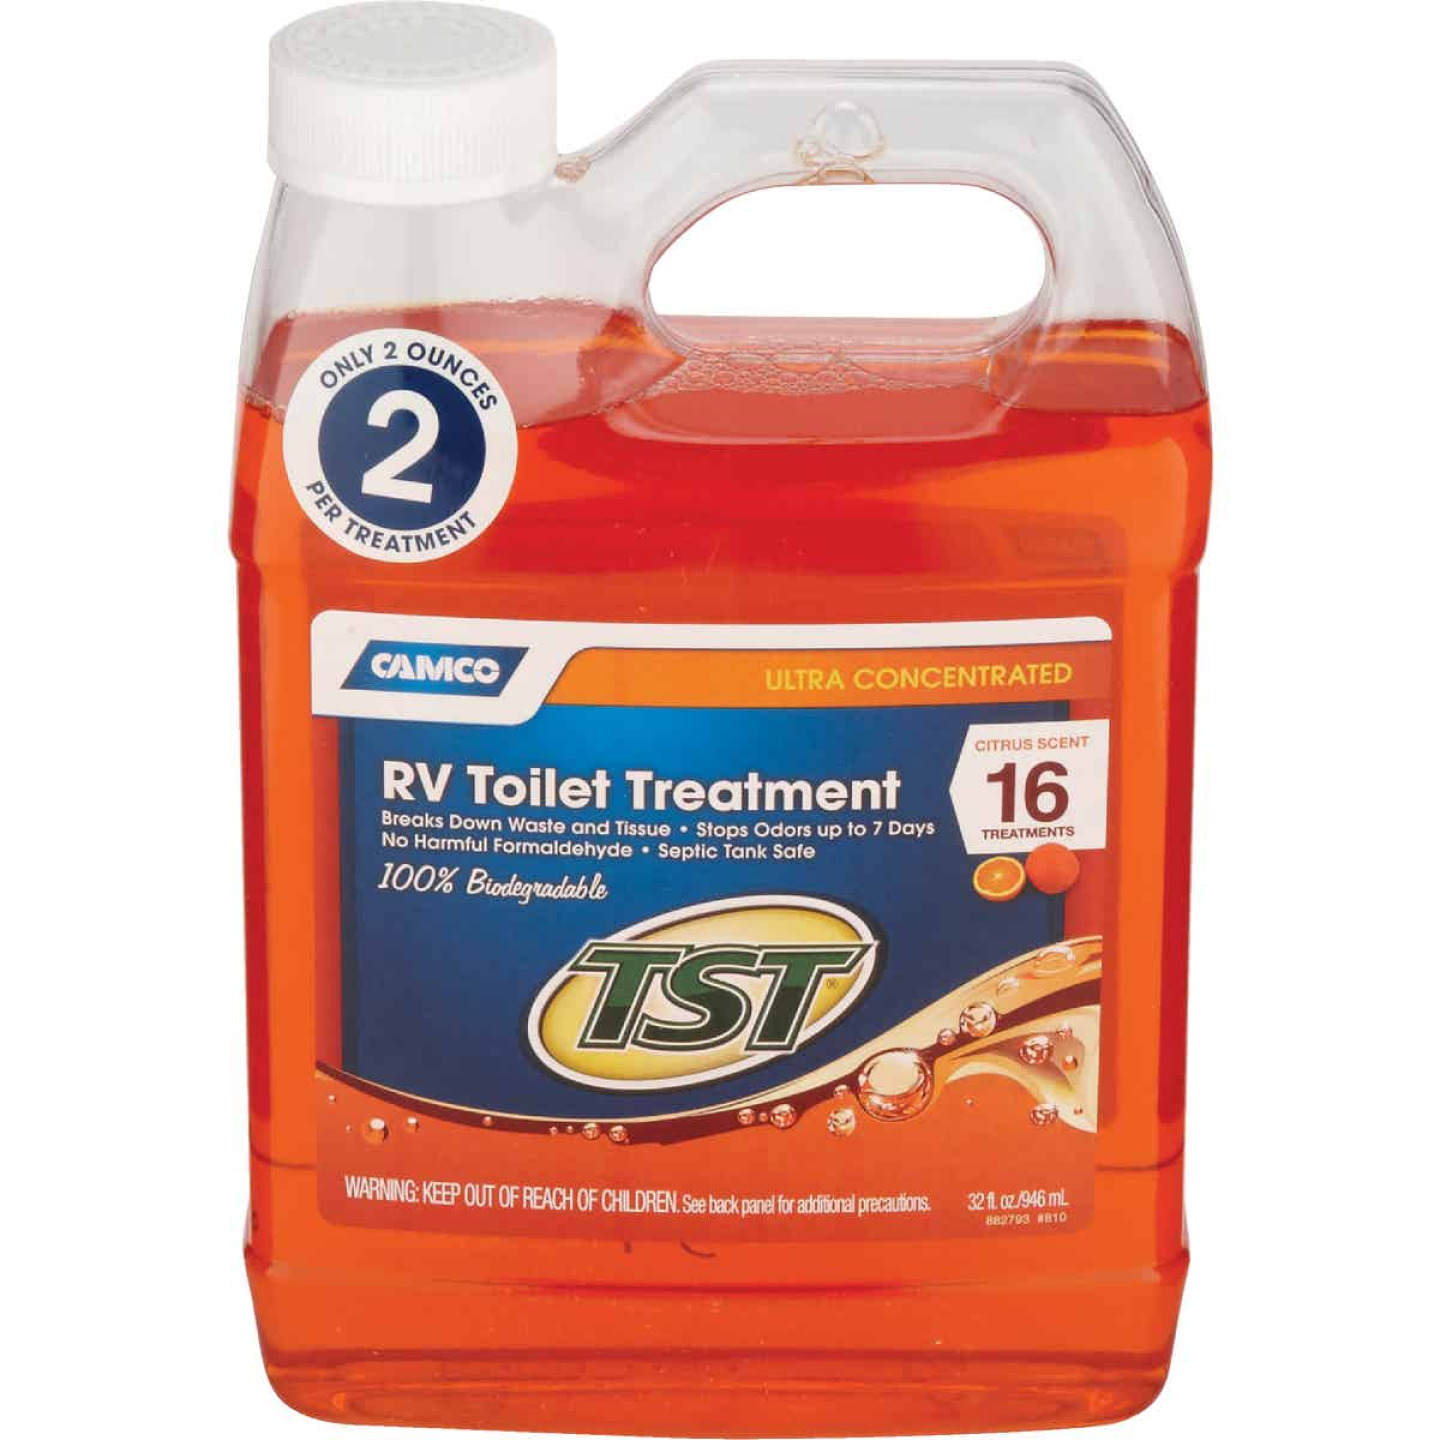 Camco 32 Oz. RV Tank Treatment Image 1